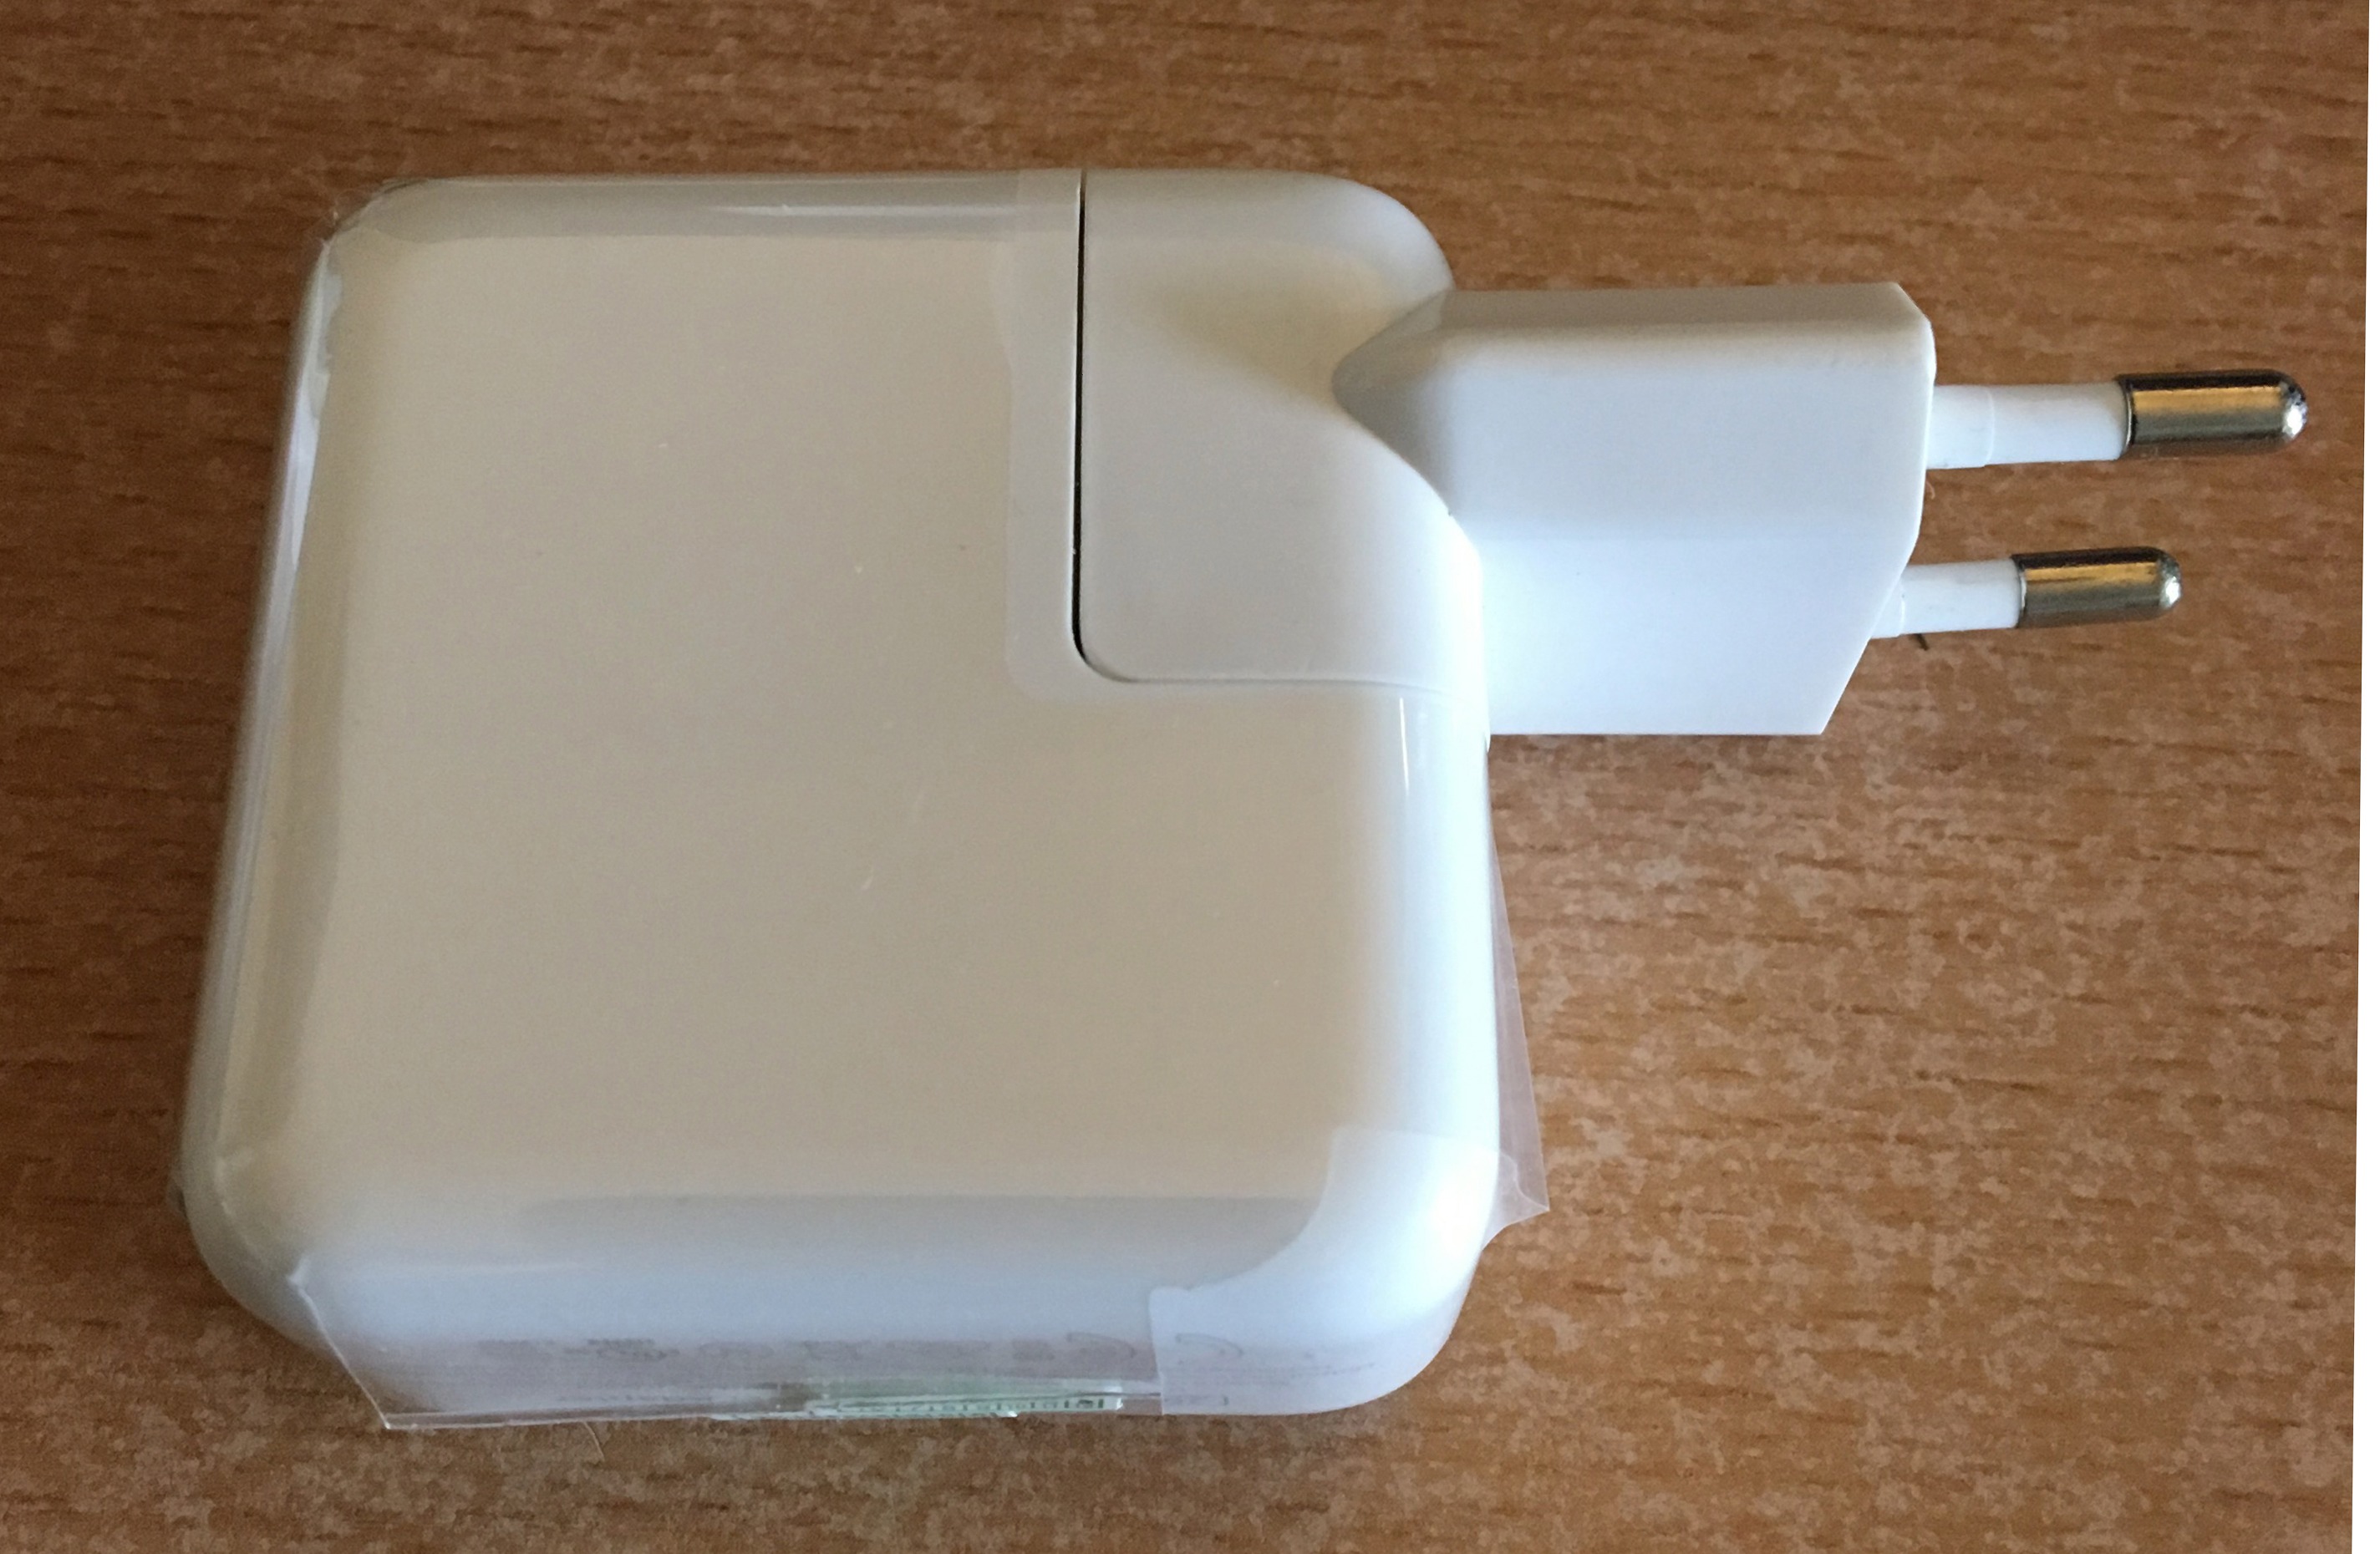 Apple 29 W USB-C Power Adapter